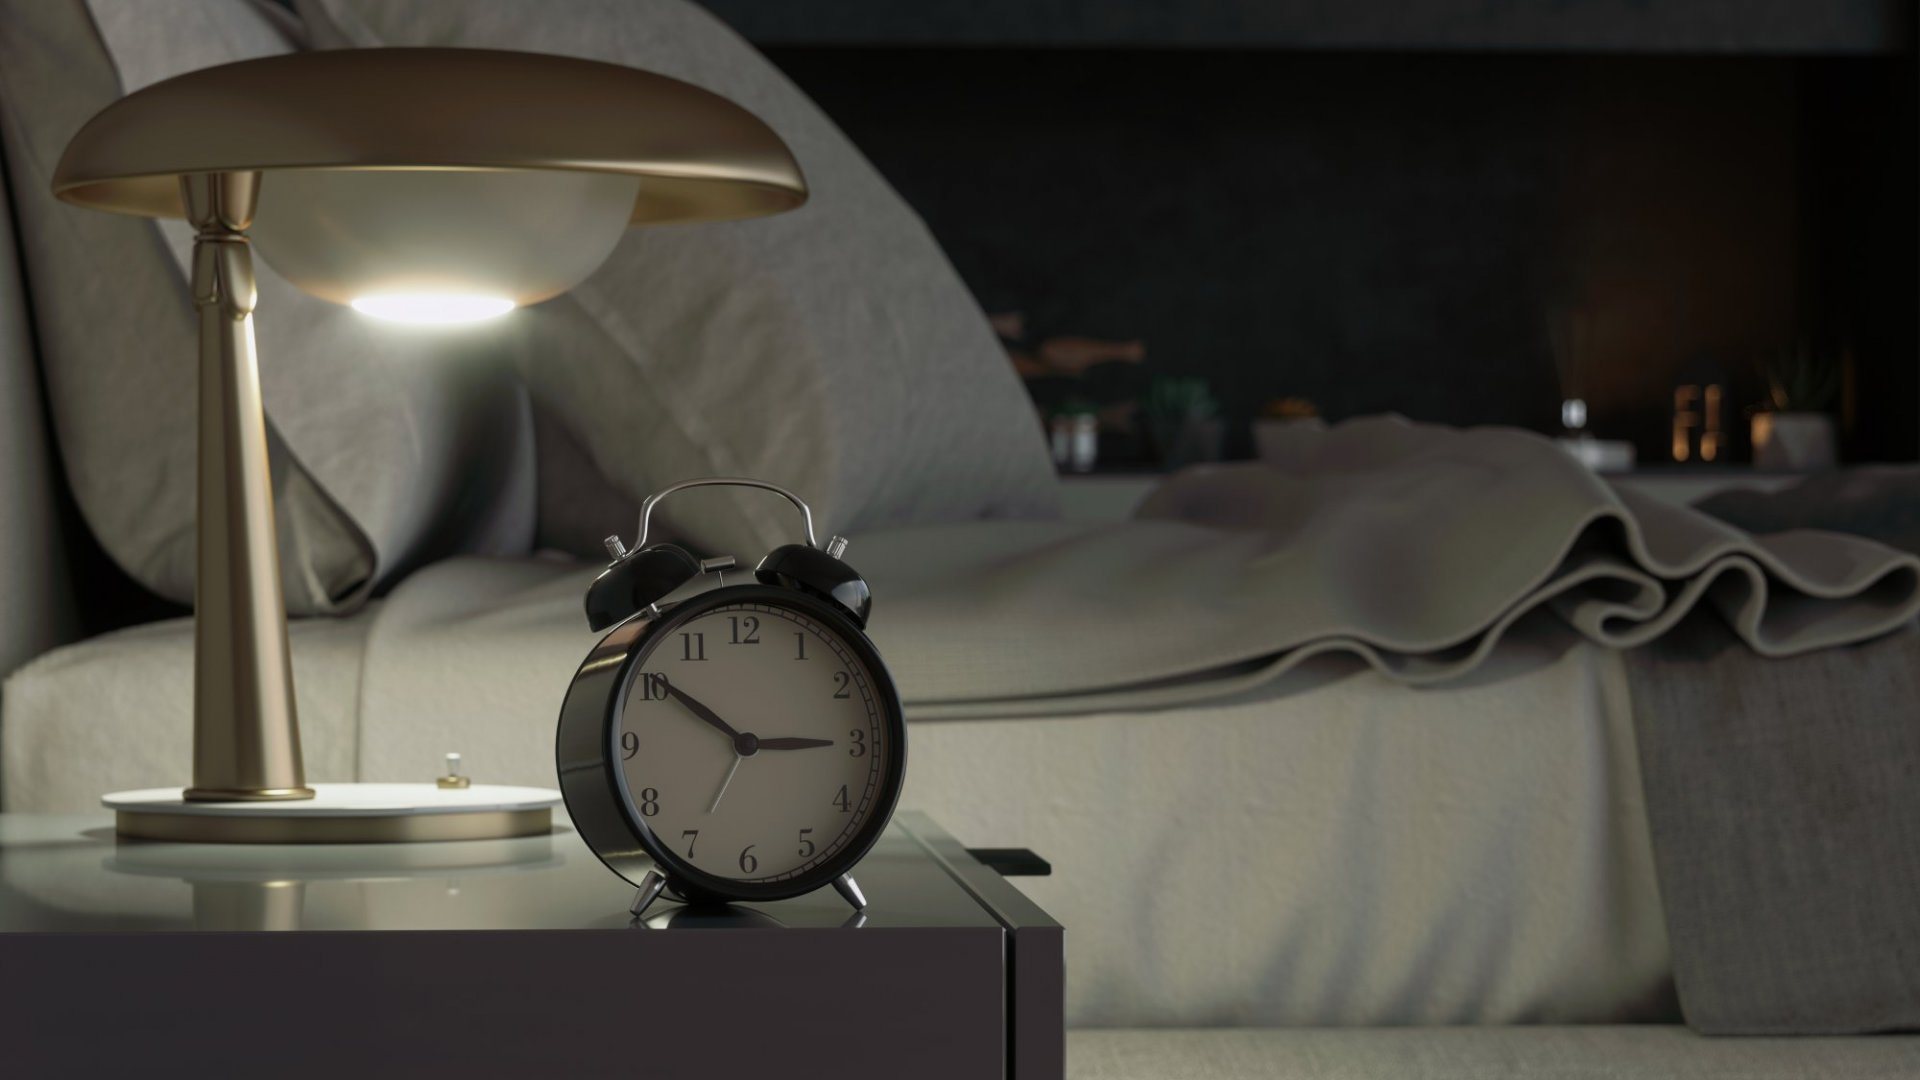 8 Essential Tactics for Beating Insomnia so You Can Feel Better and Be More Productive